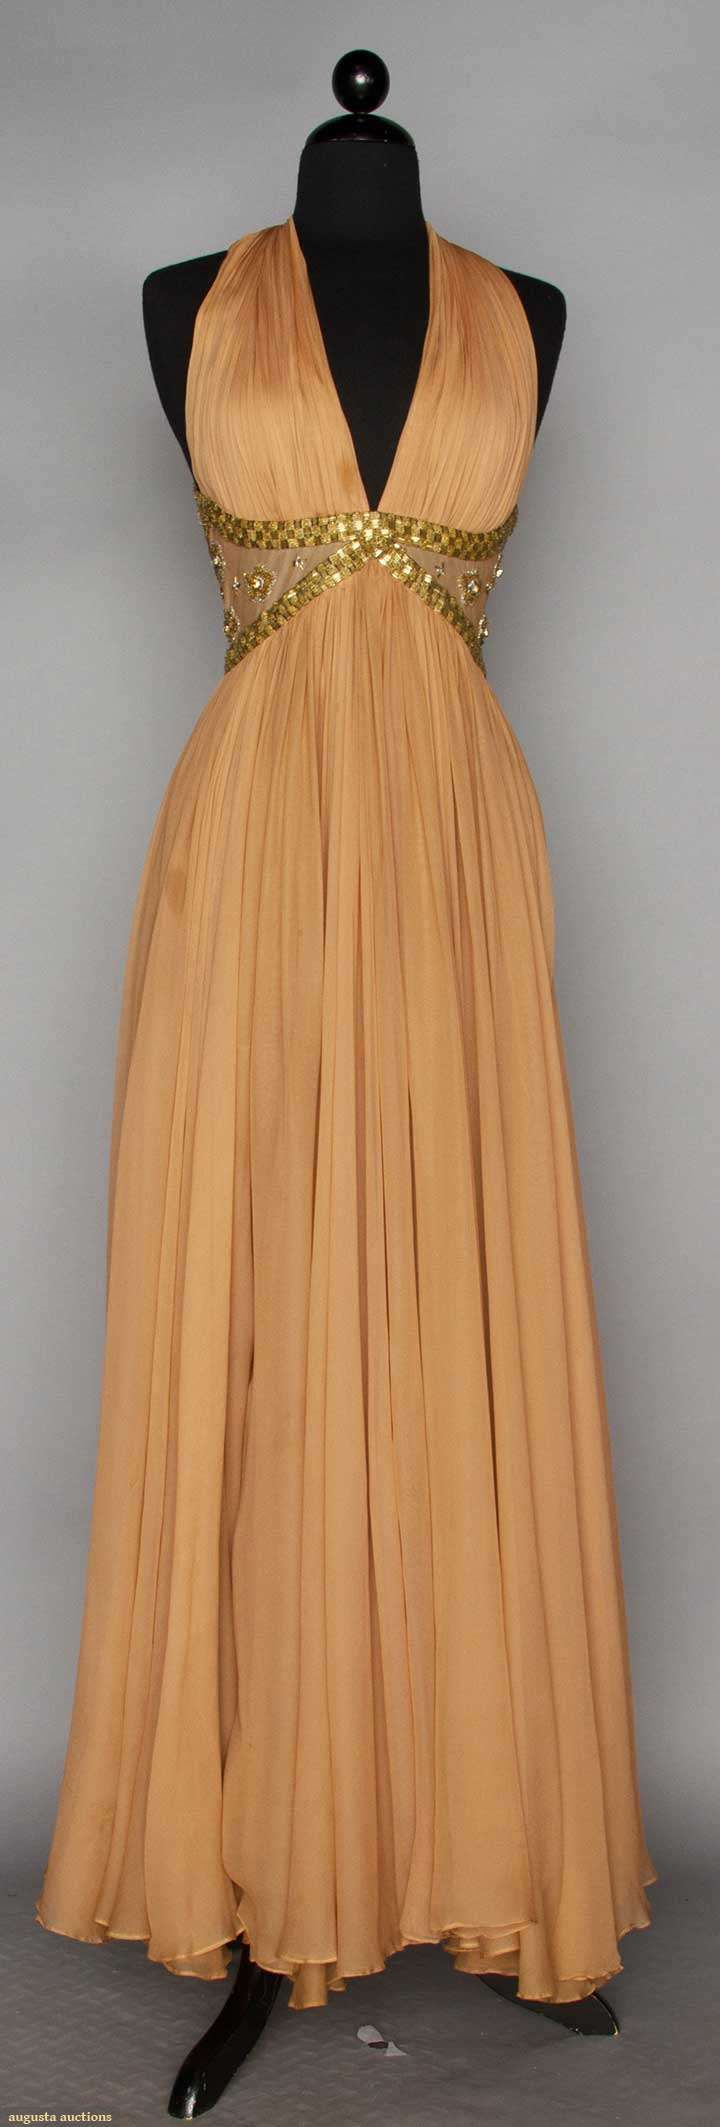 Two Evening Gowns, 1940s & 1990s, Augusta Auctions, November 11, 2015 NYC